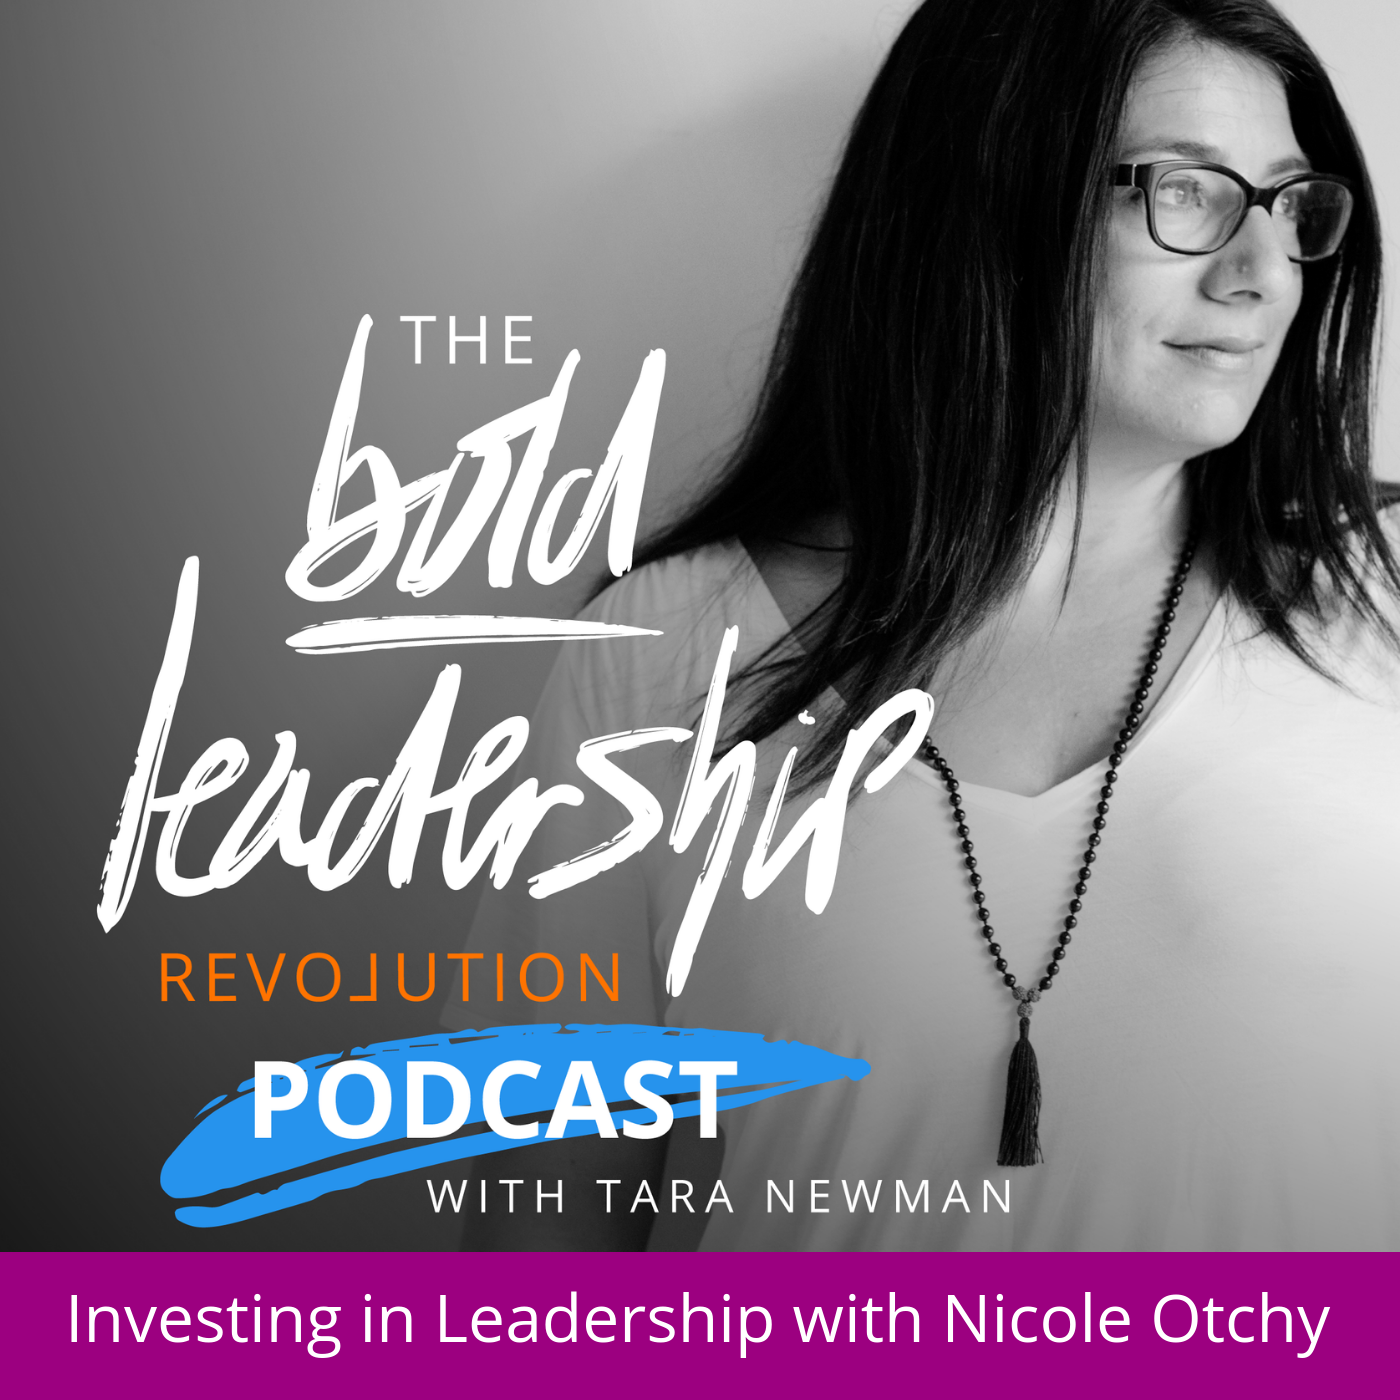 Investing in Leadership with Nicole Otchy